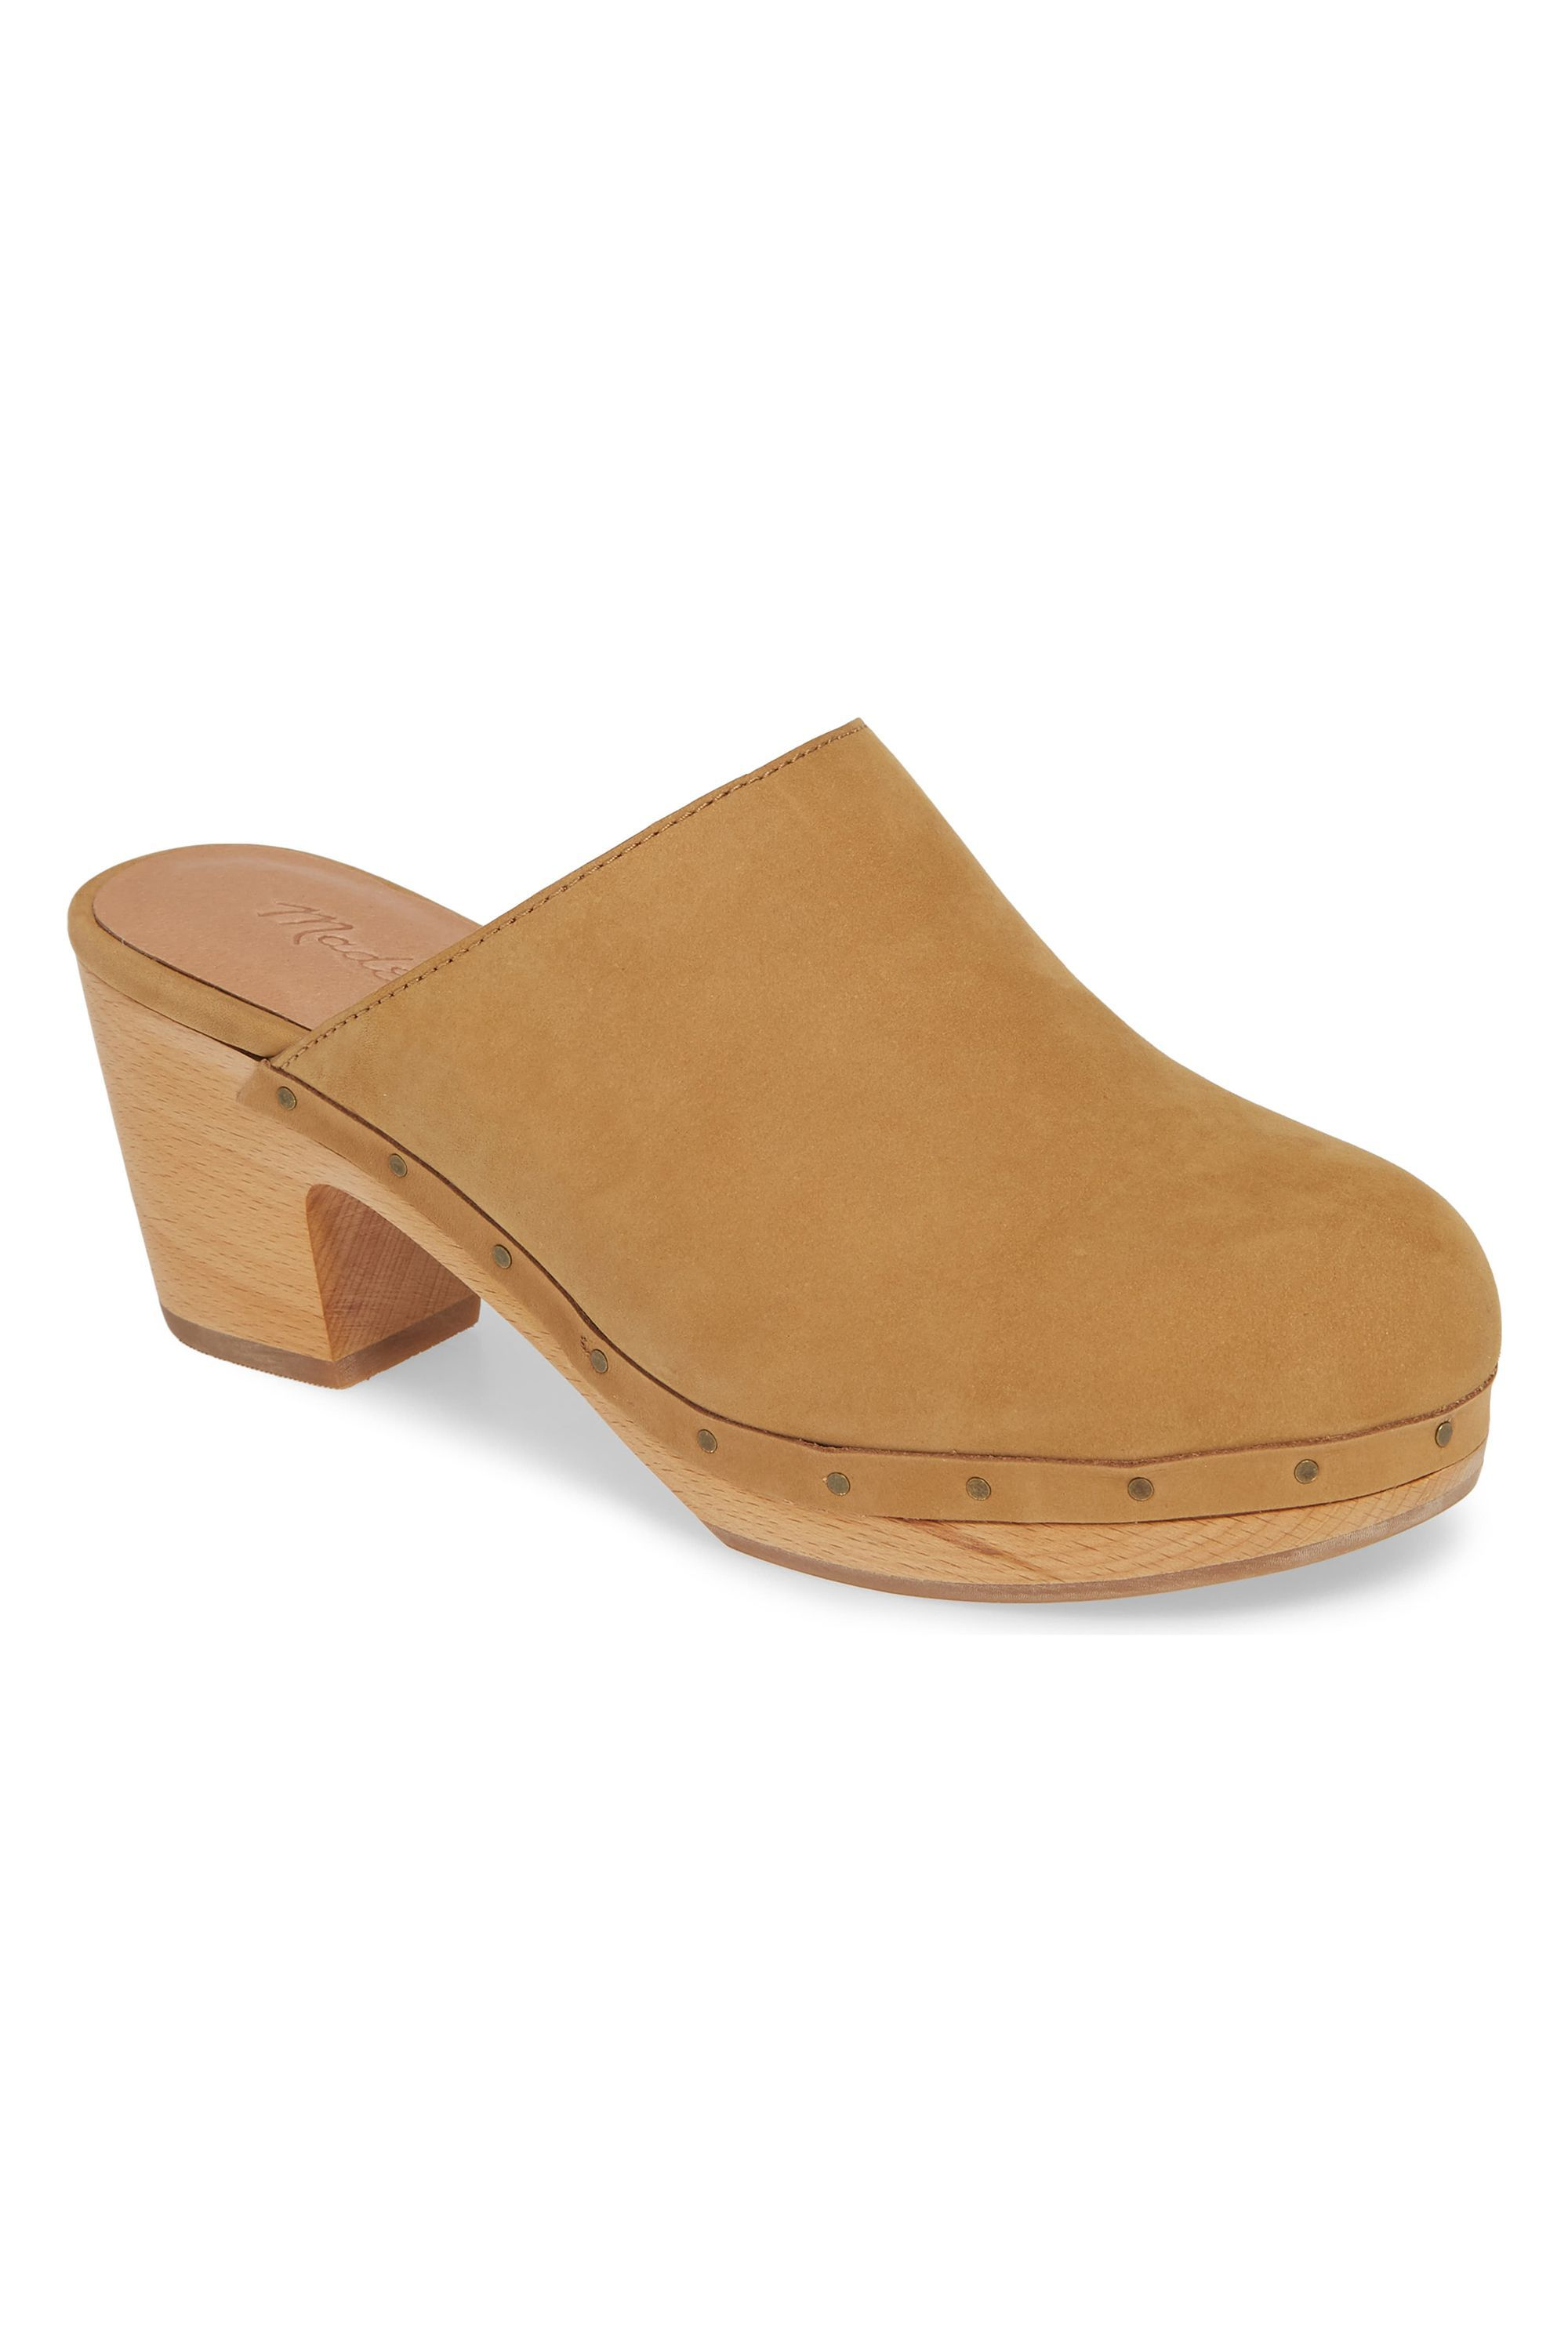 The Ayanna Clog Madewell, $94.80 nordstrom.com SHOP NOW